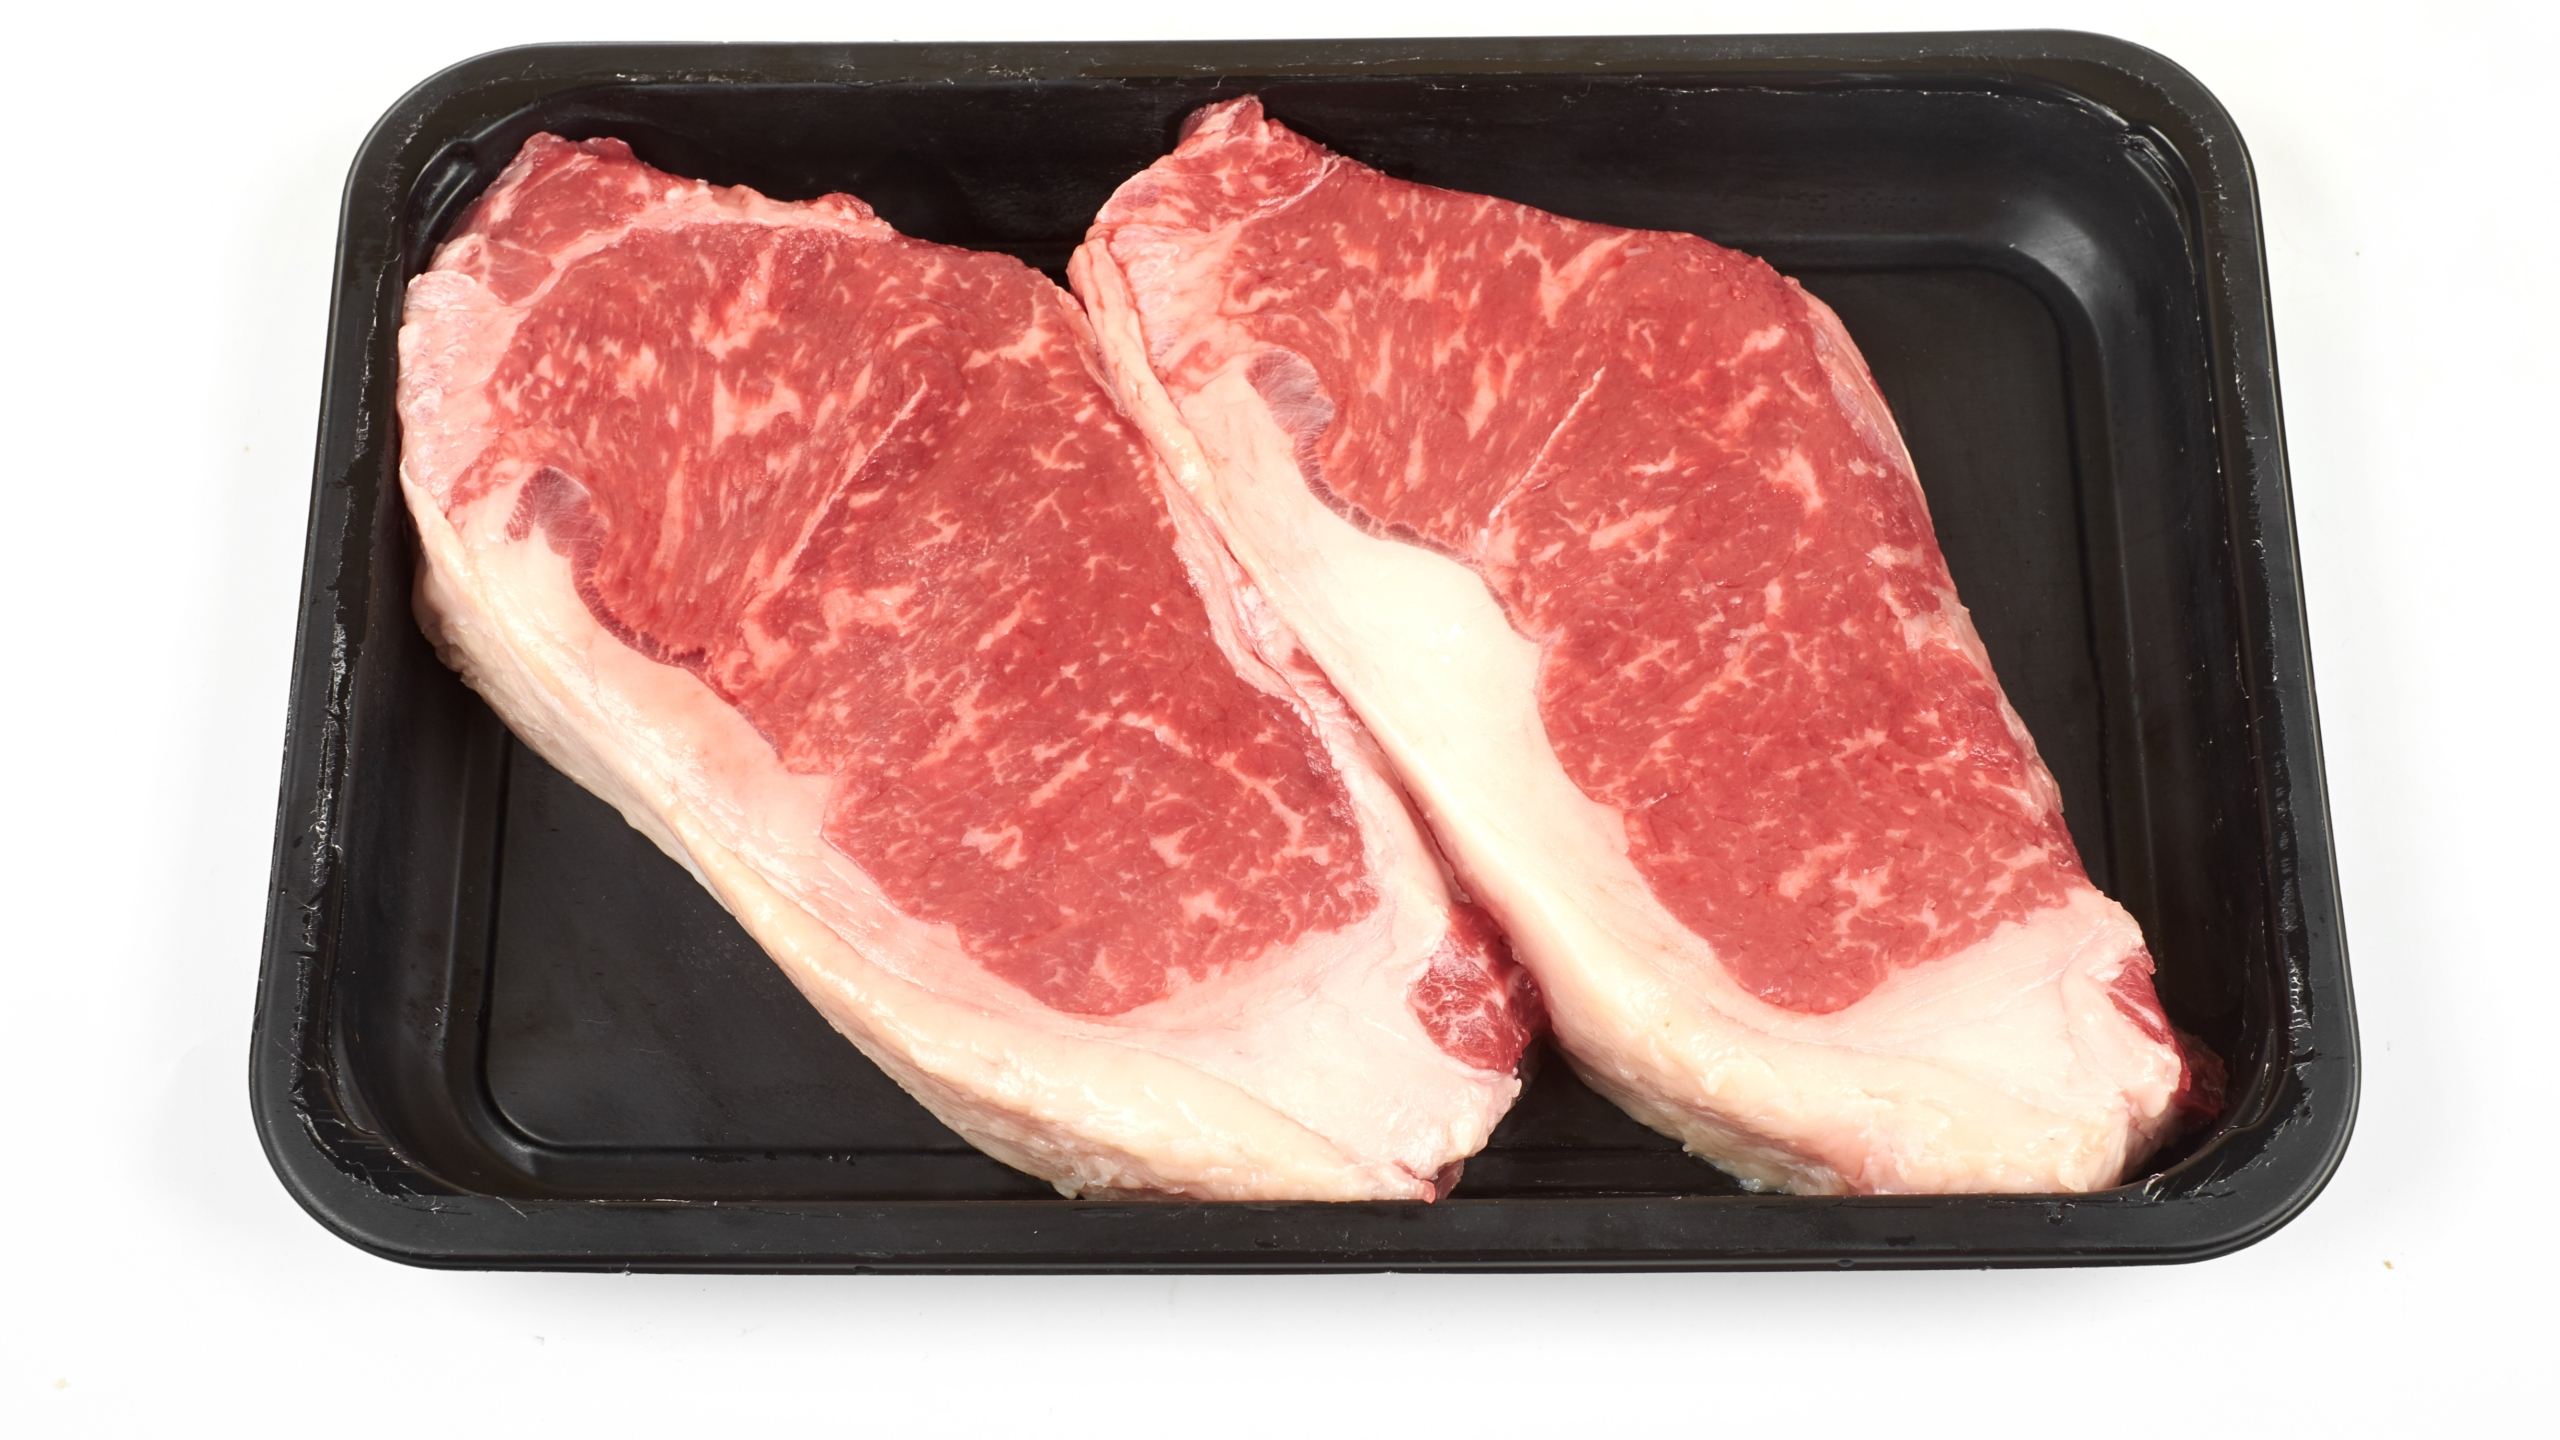 Over 24,000 pounds of beef recalled, deemed unfit for human